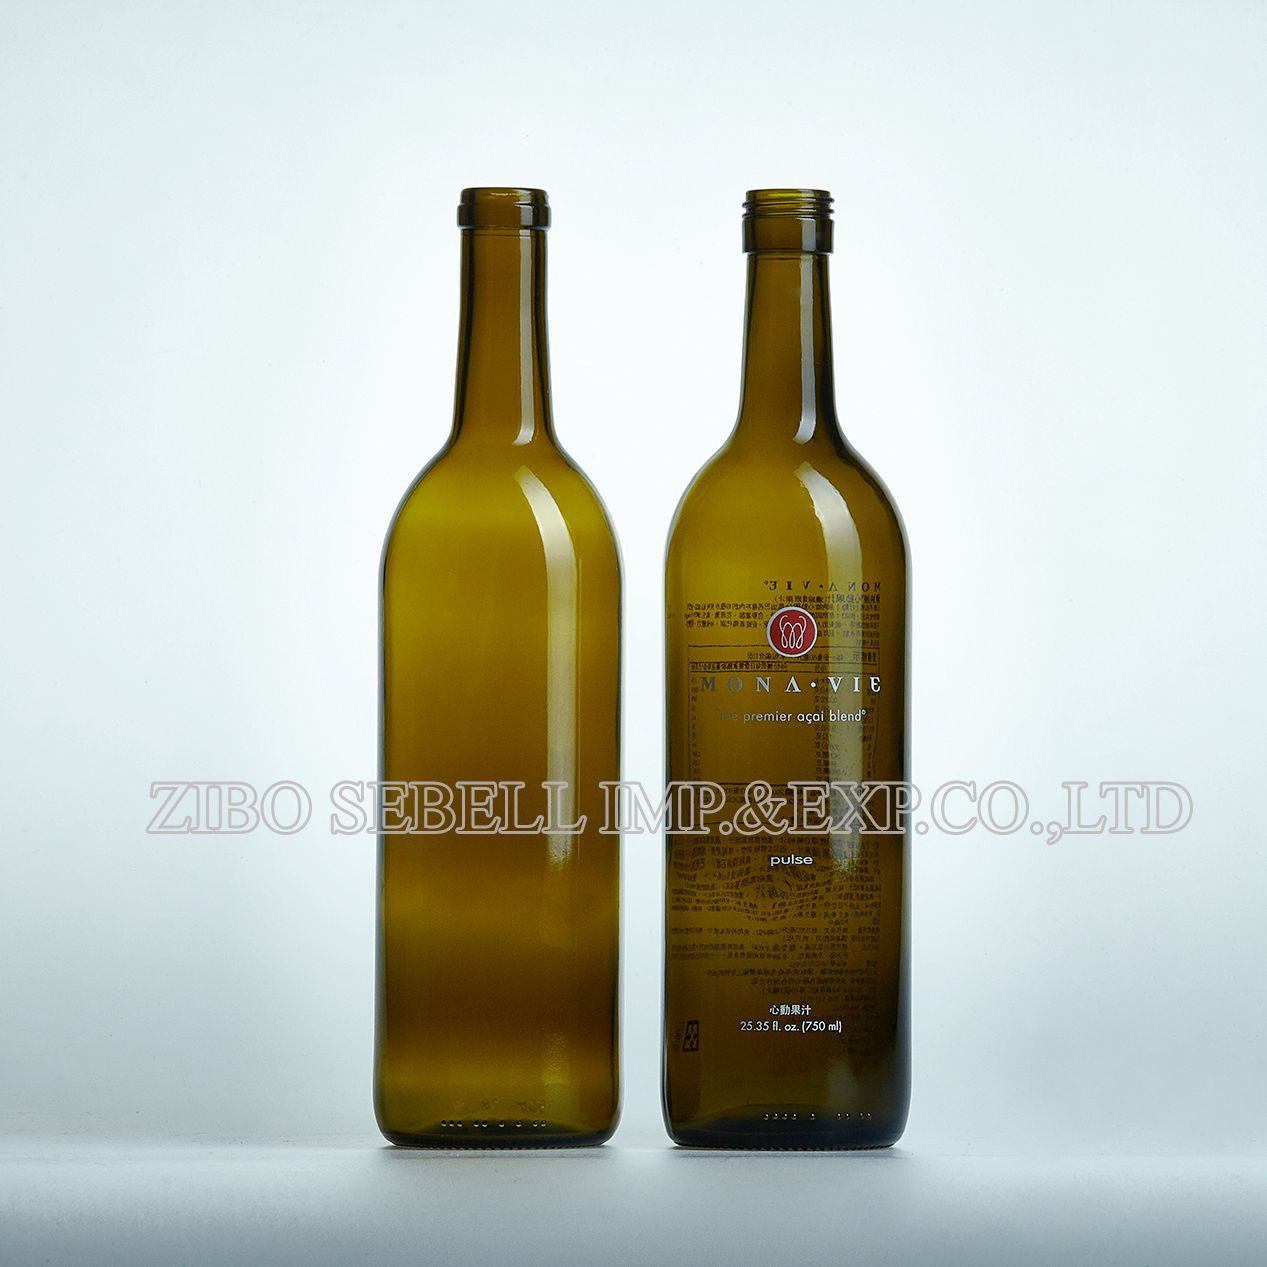 Reliable China supplier of glass wine bottles